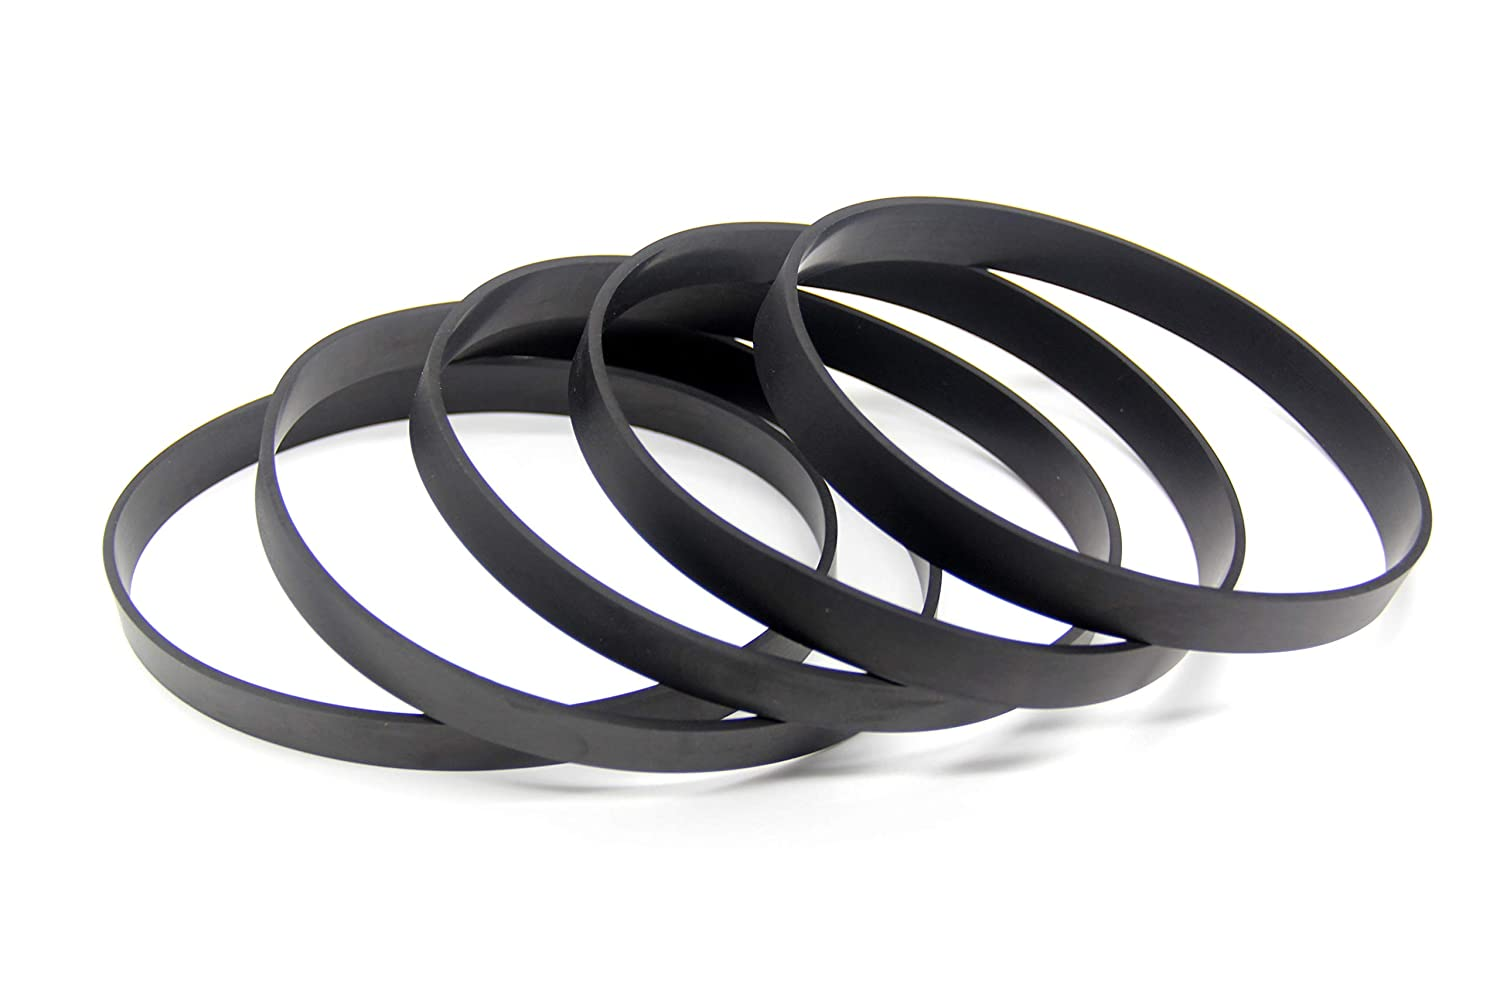 Pro-Parts 3031120 Belts for Bissell Style 7/9/10/12/14/16 Replacement Part 32074, 2031093, 3031120 (5Pcs)